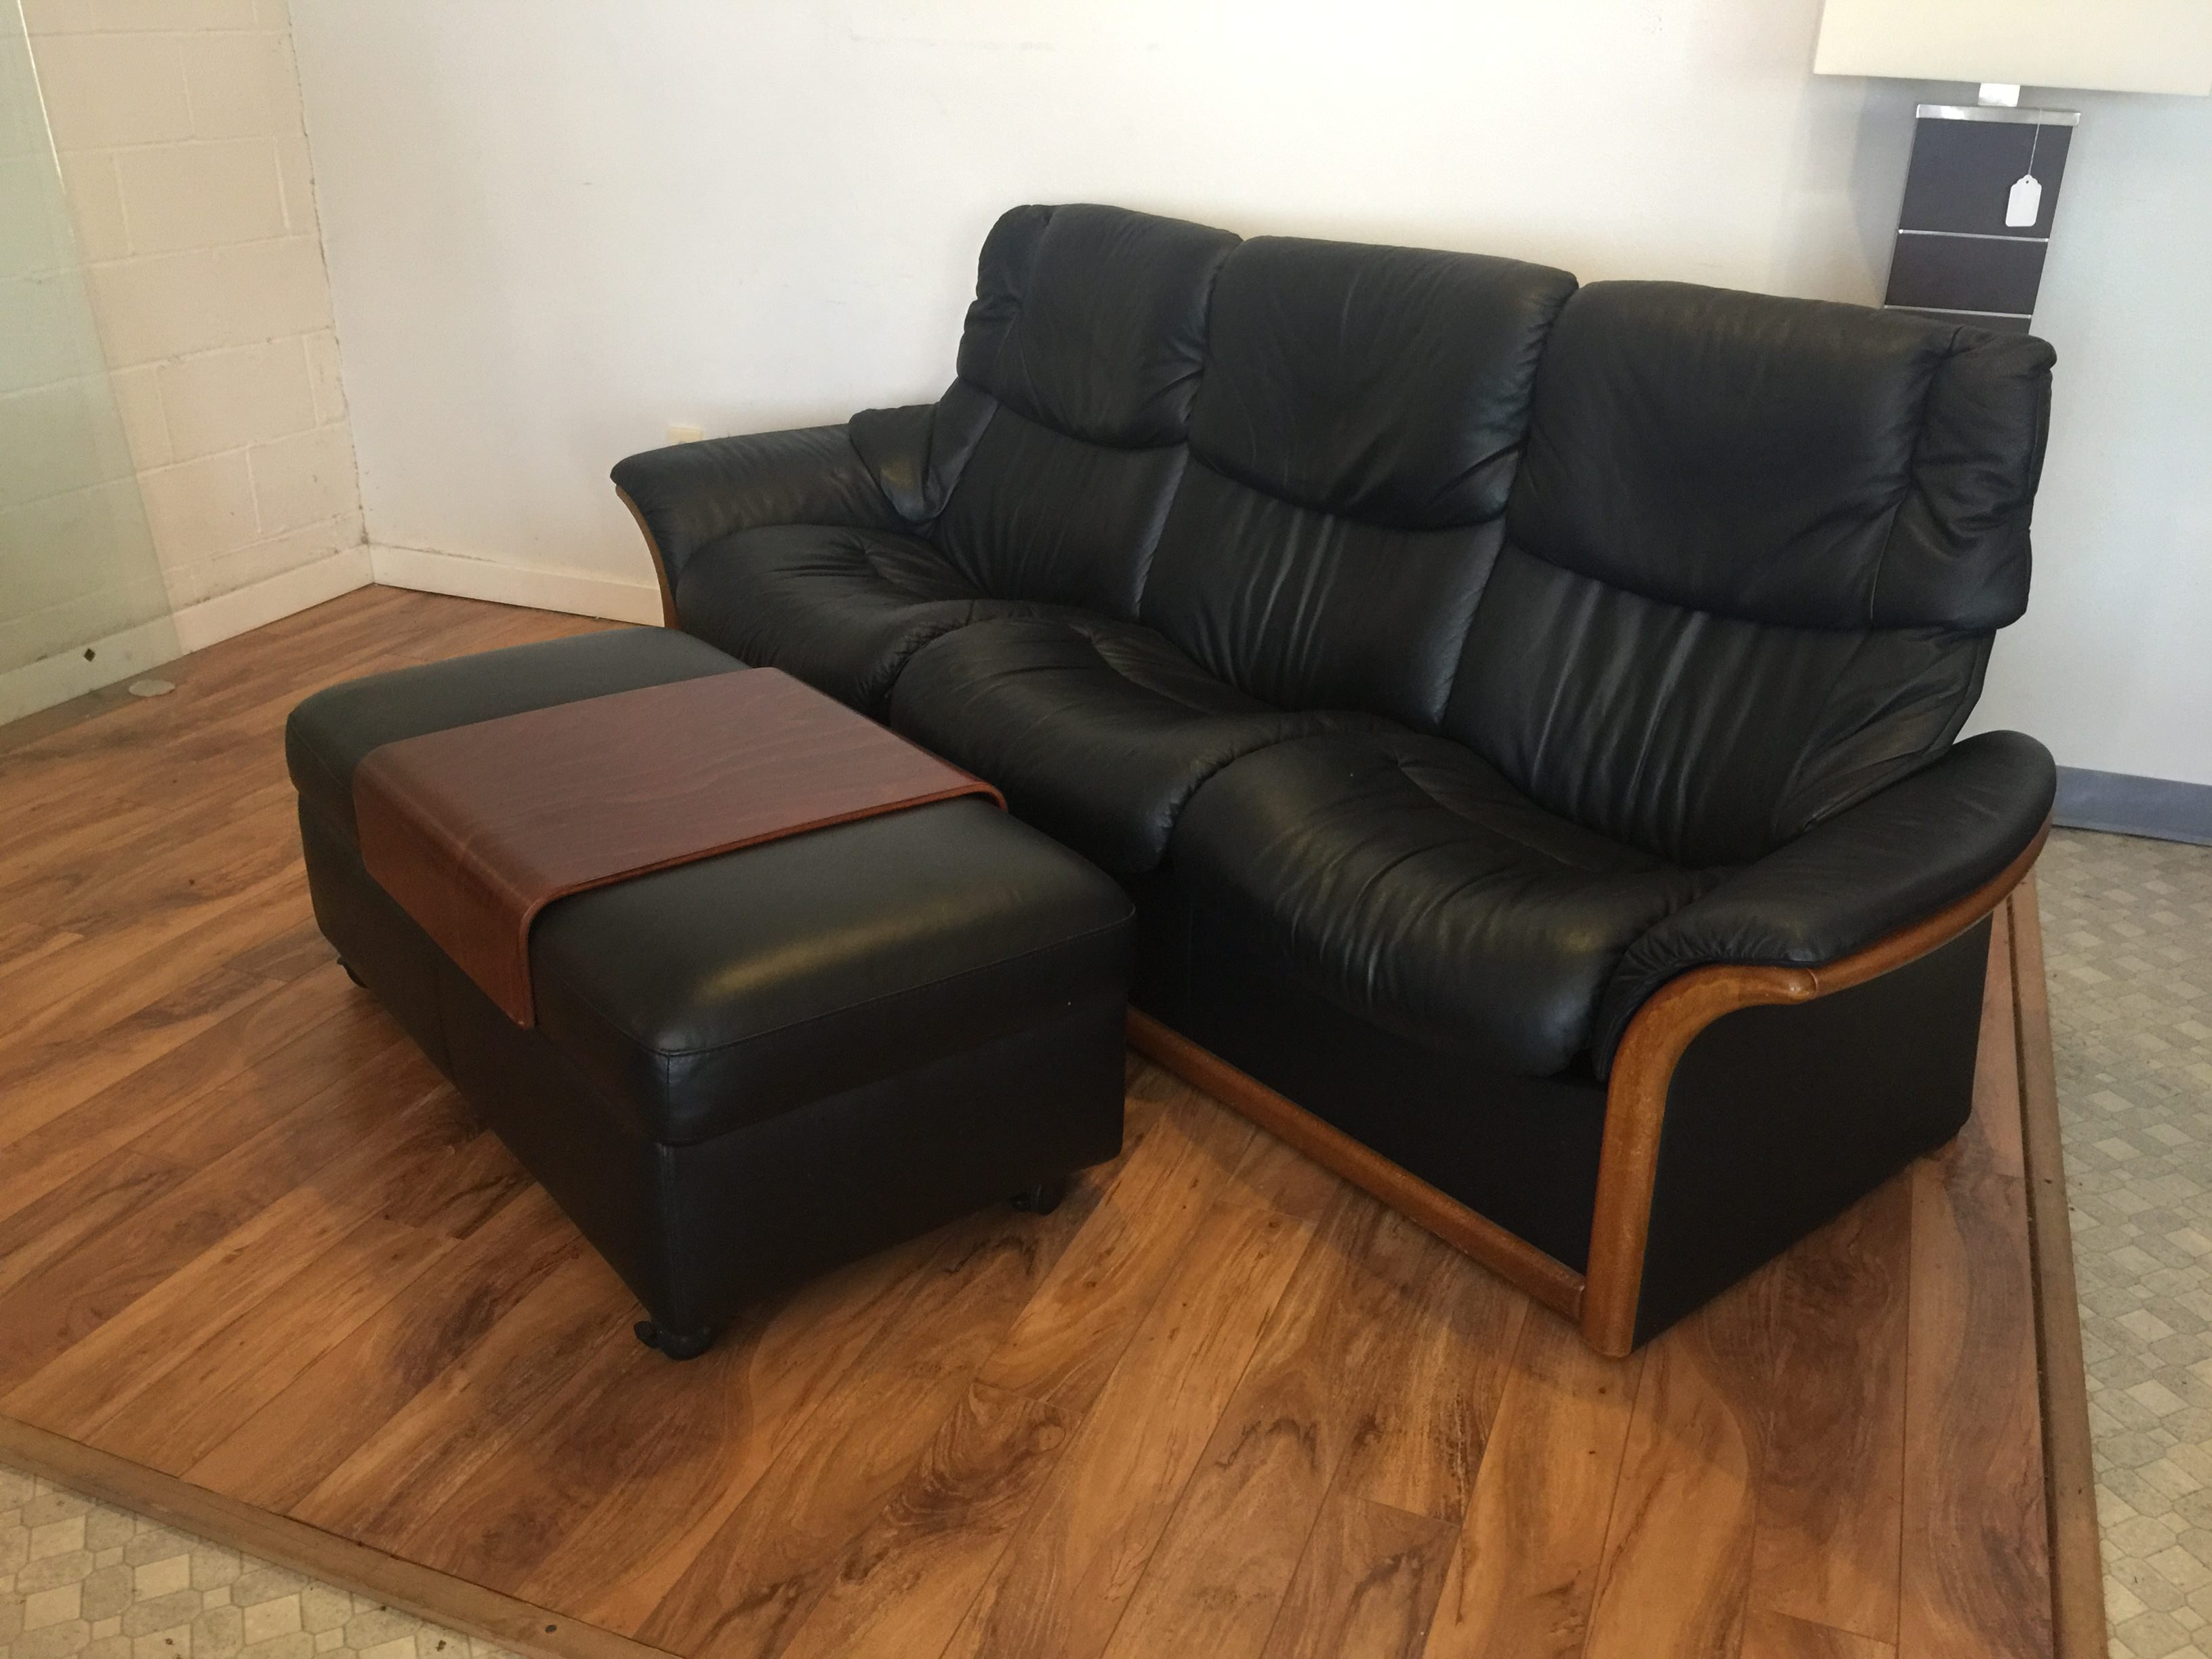 Sofa Fra Ekornes Stressless Ekornes Sofa Cost To Ship A Ekornes Stressless